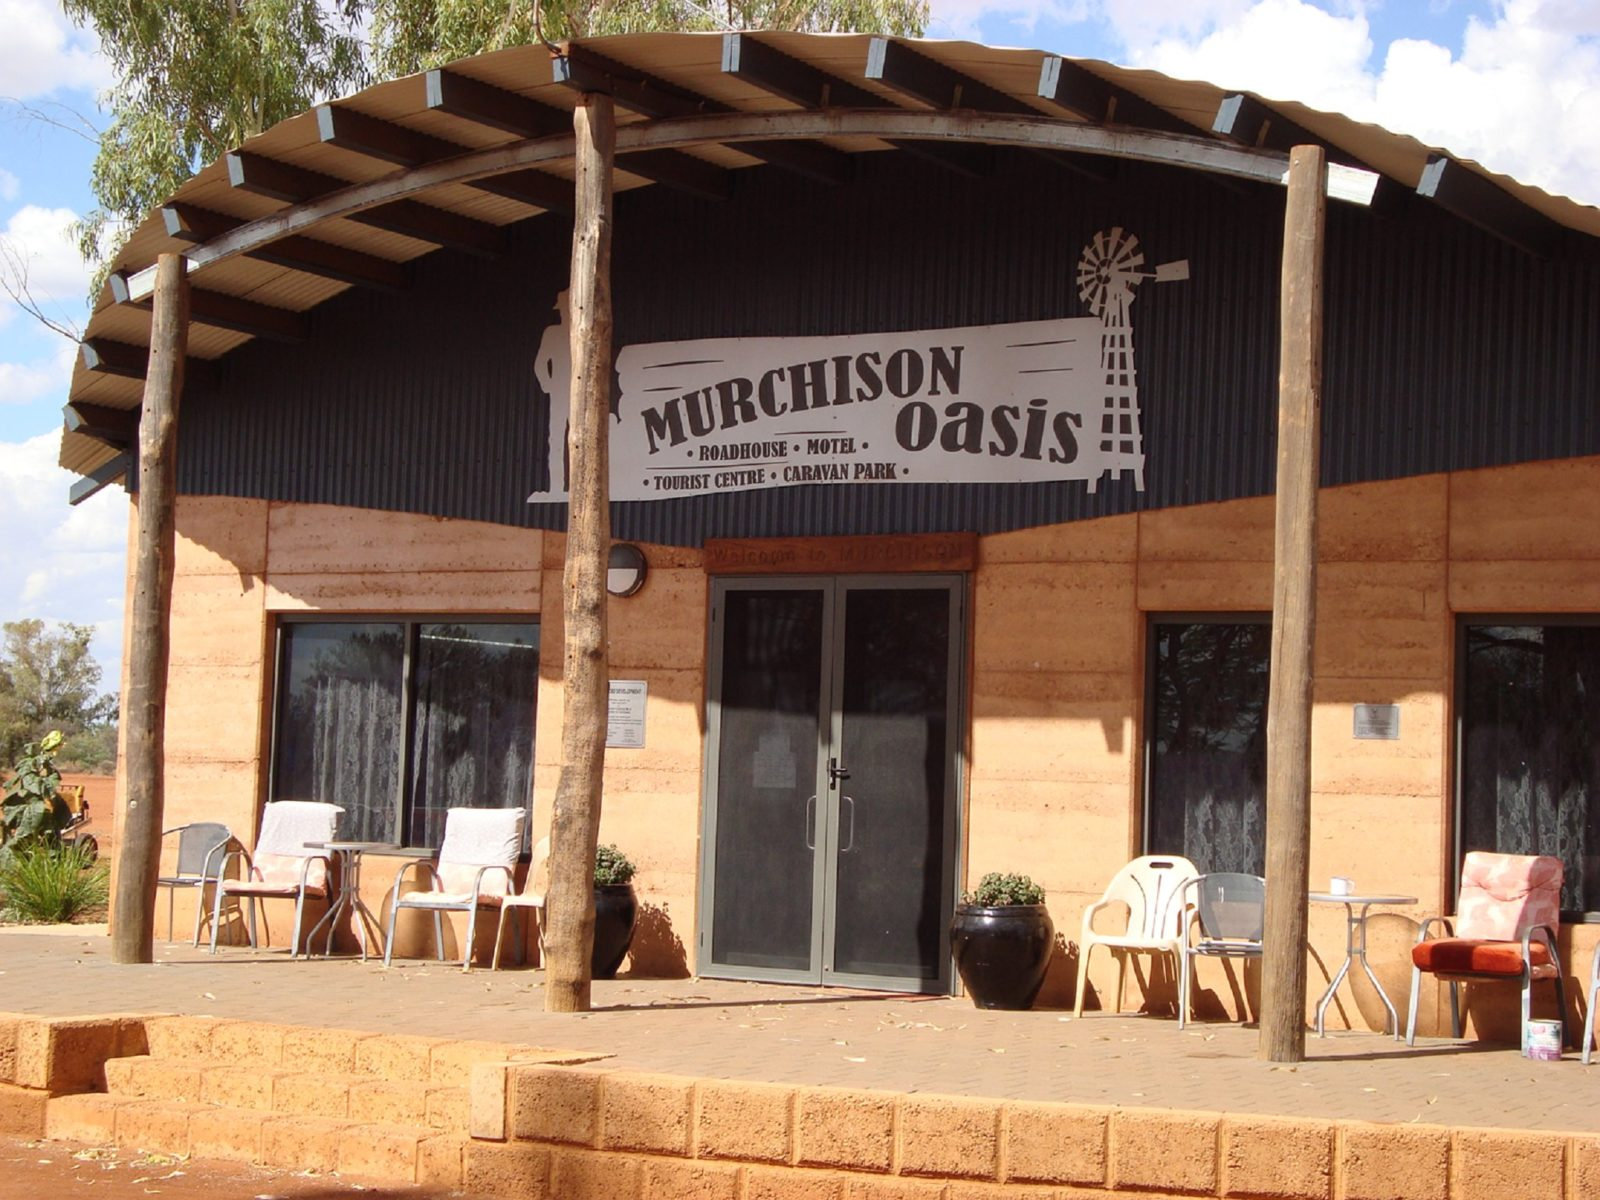 Murchison Oasis Roadhouse, Murchison, Western Australia